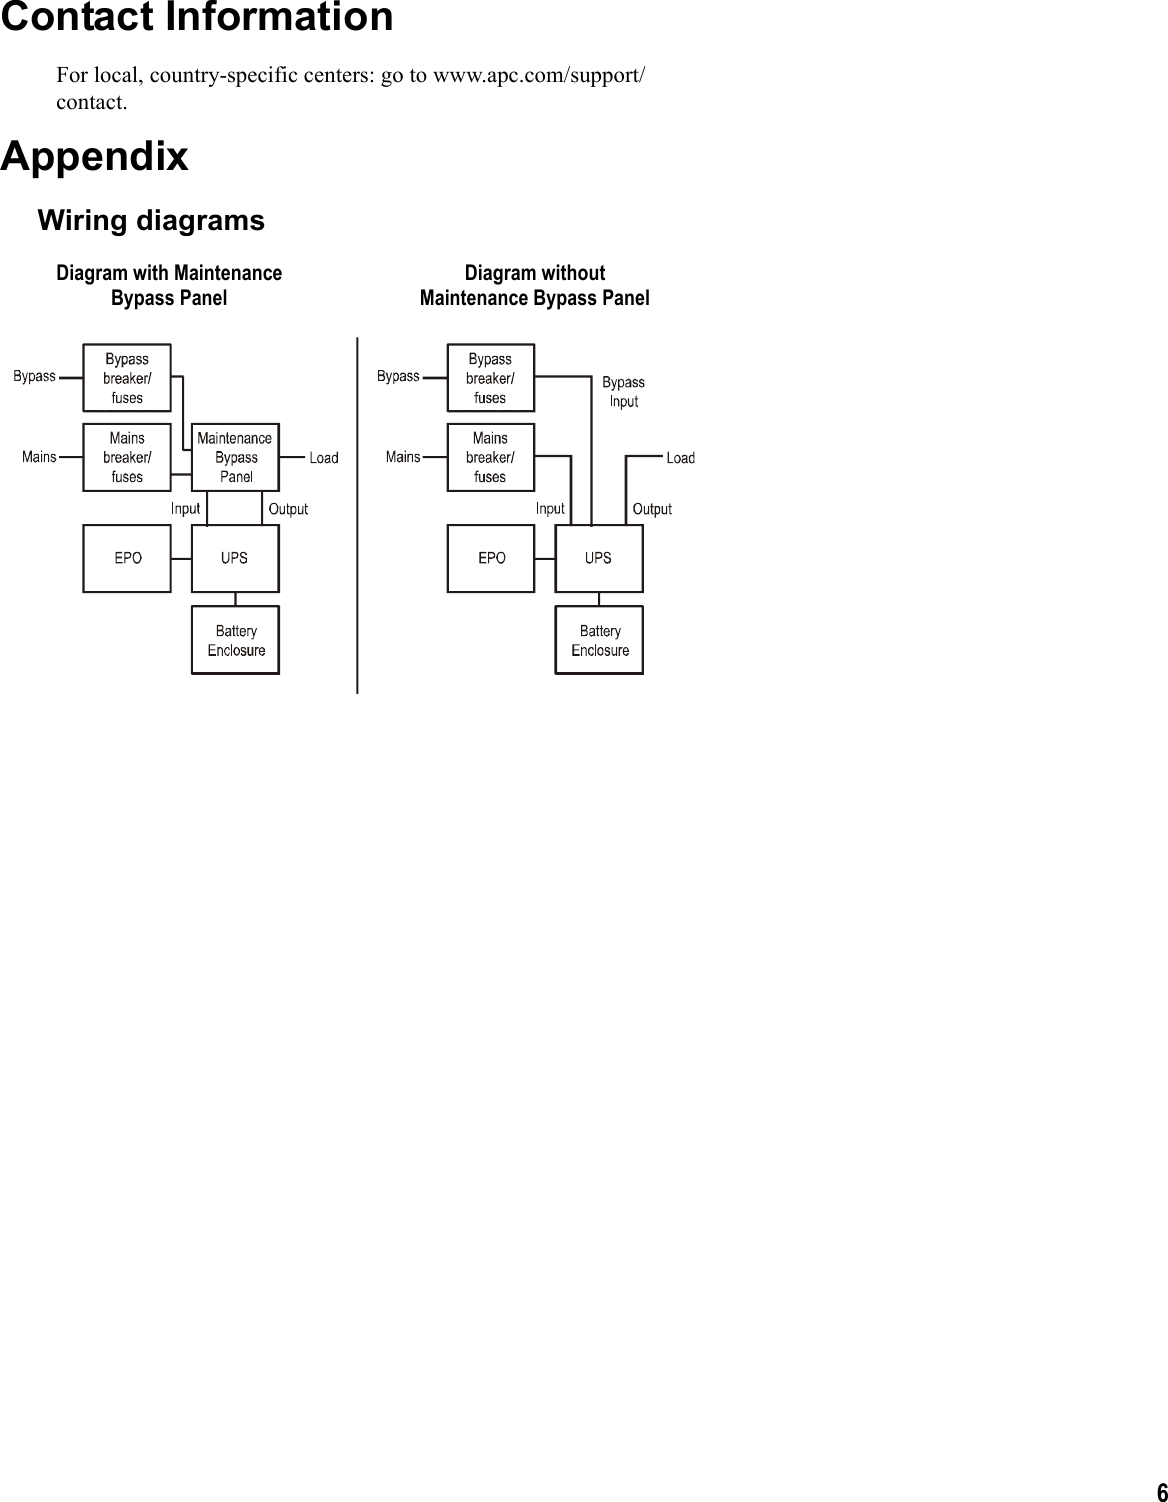 Apc Galaxy 990 2258b 001 Users Manual Ais Im 9902258 Mn02 Wiring Battery Diagram Page 6 Of